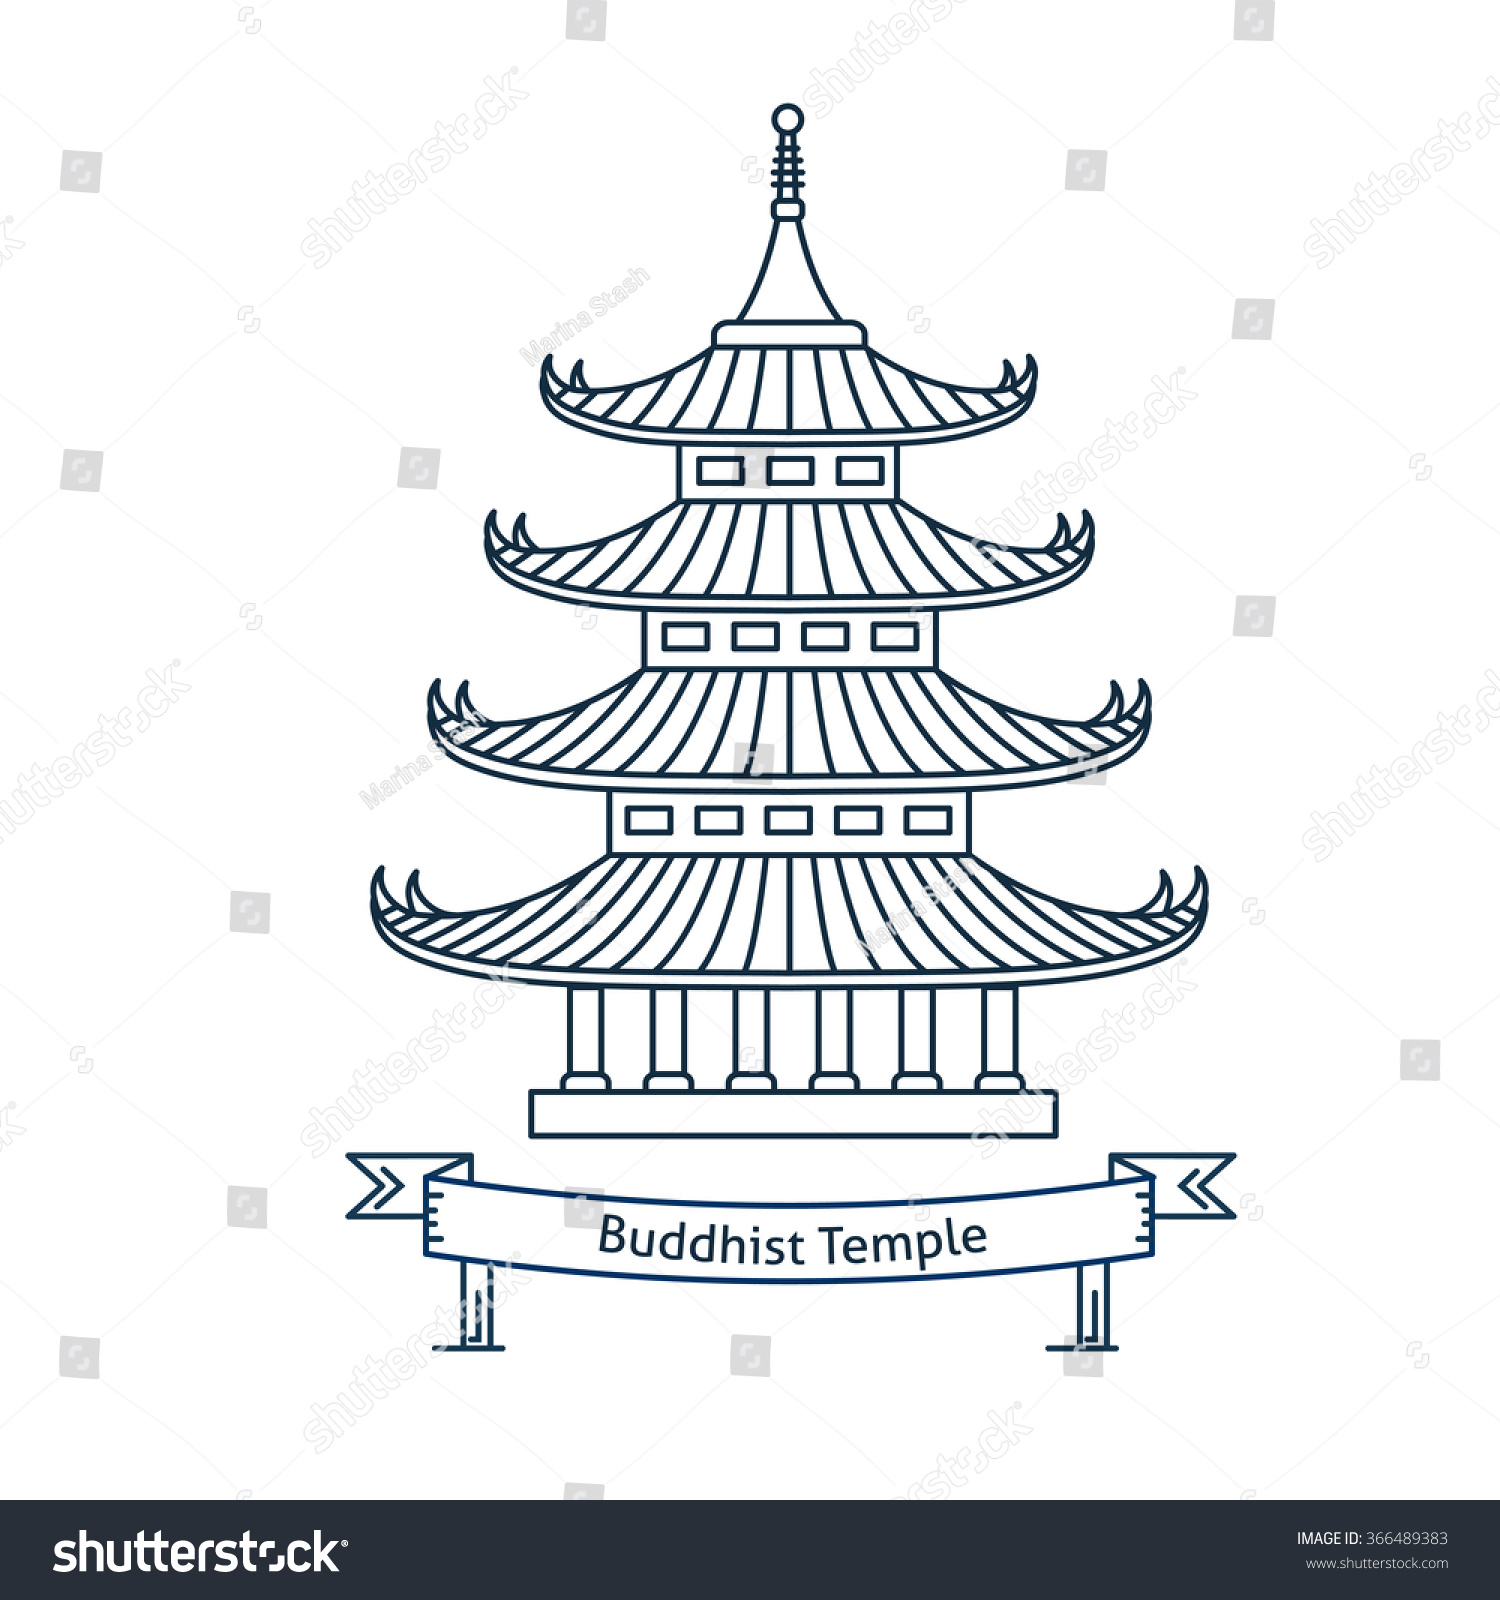 Buddhist Stock Photos Royalty Free Images amp Vectors Shutterstock